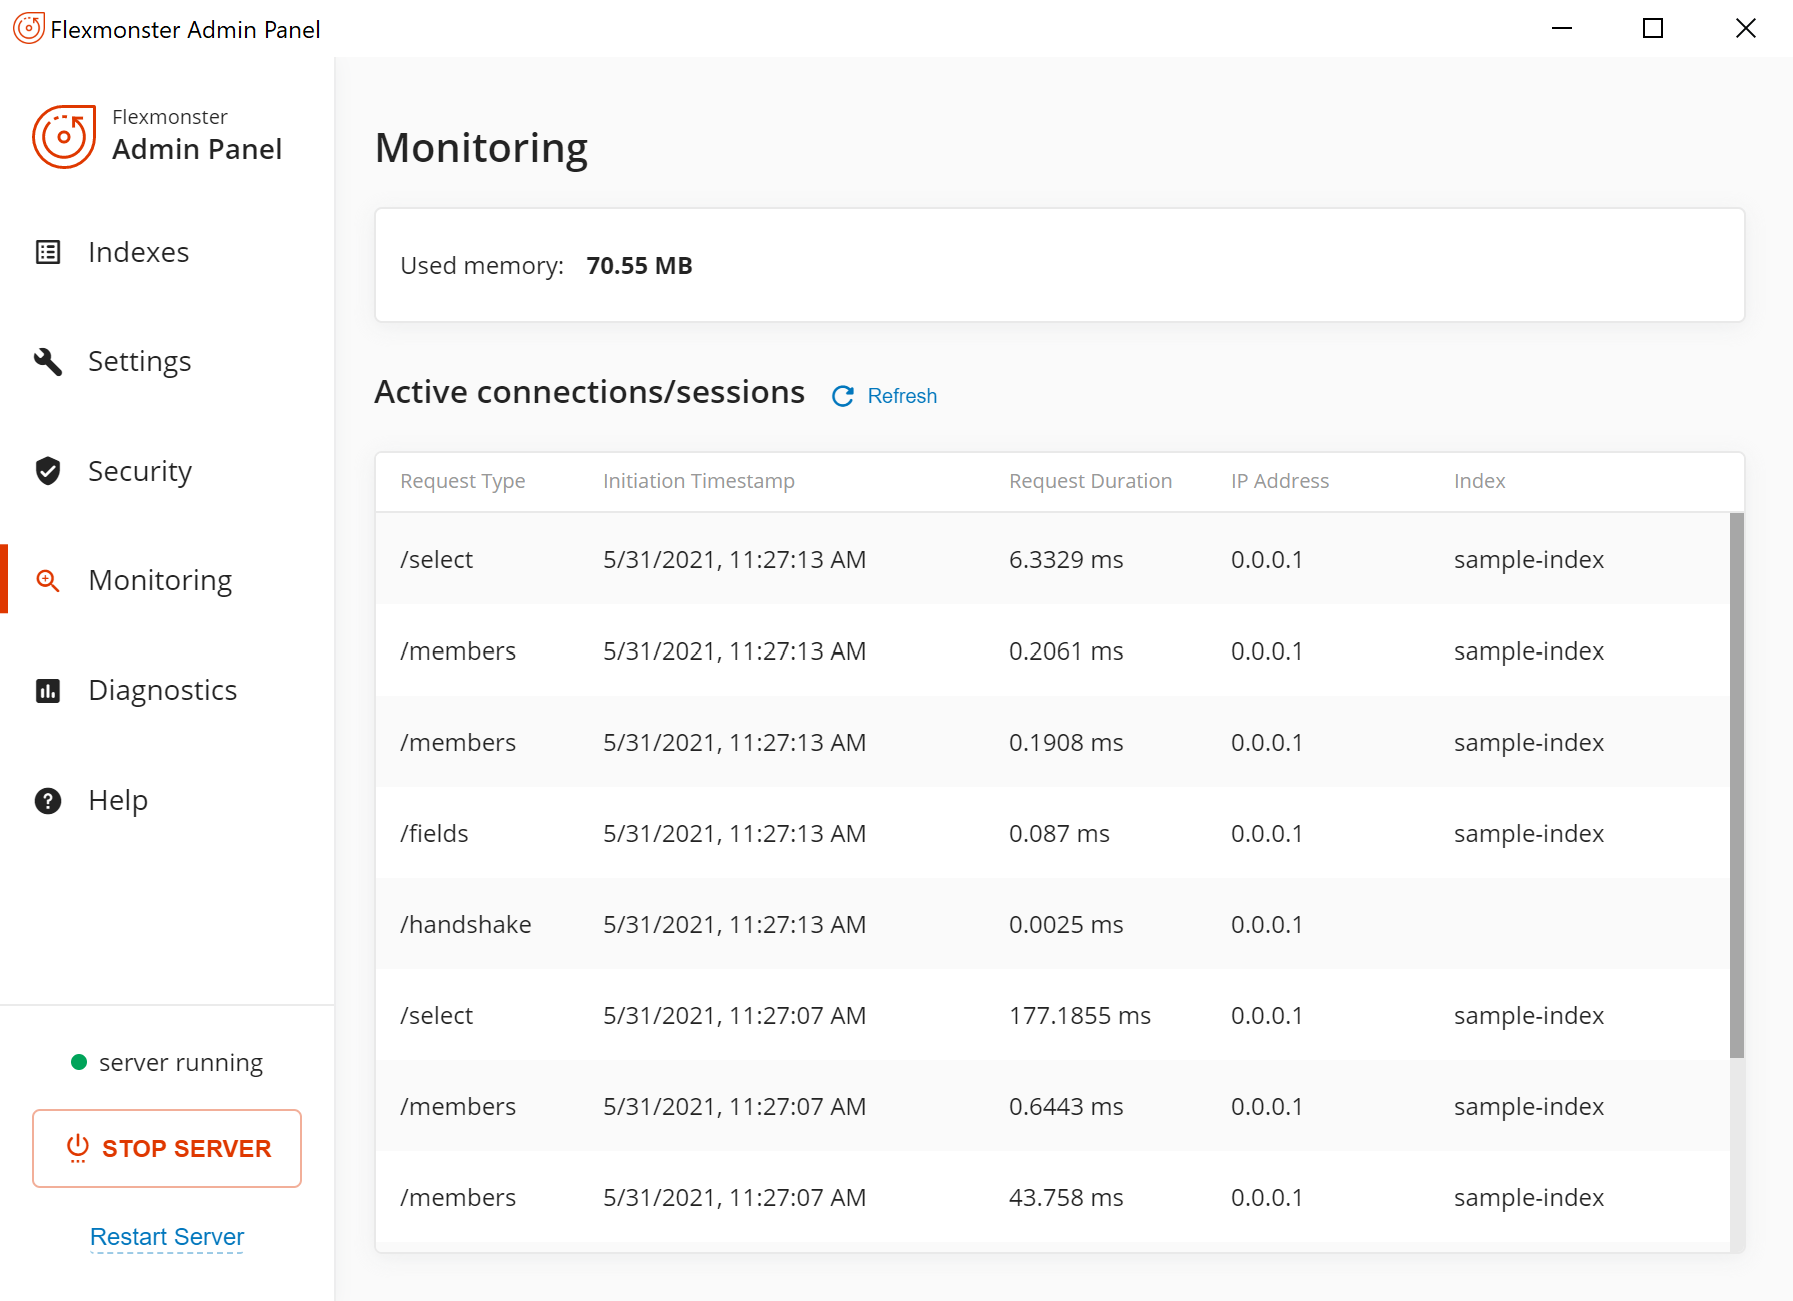 Monitoring tab in the Admin Panel